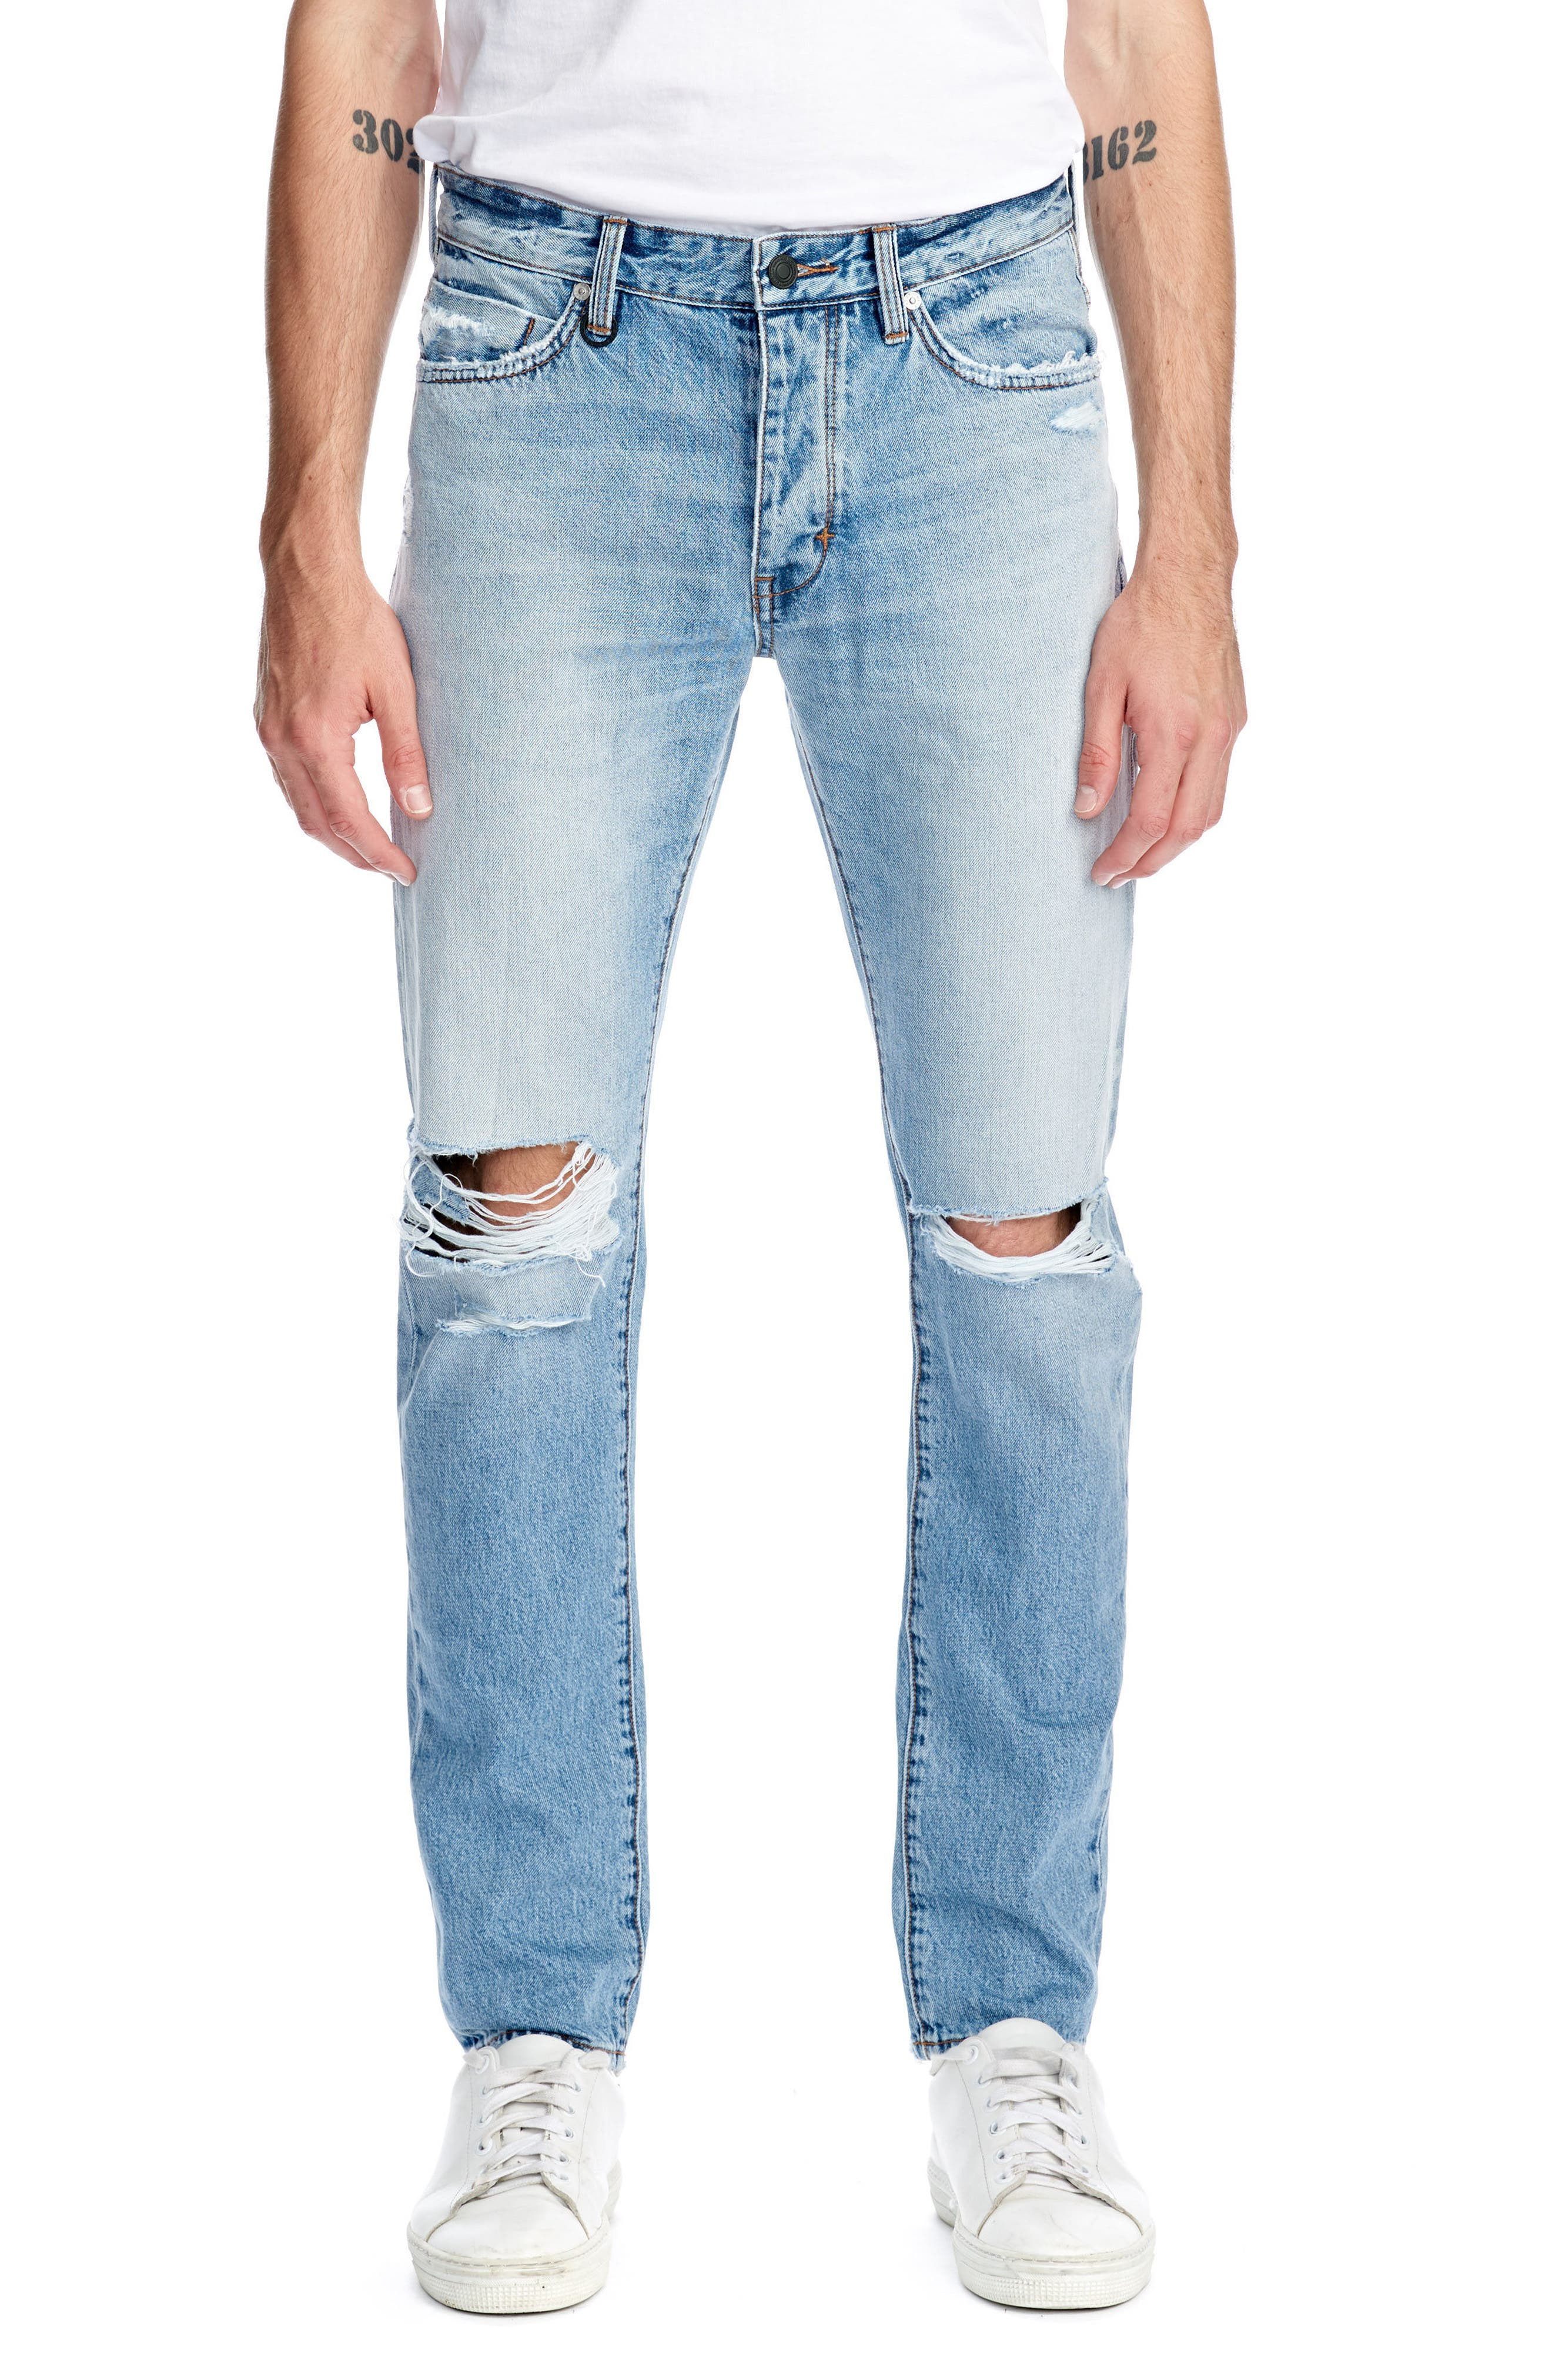 Lou Slim Fit Jeans,                             Main thumbnail 1, color,                             405